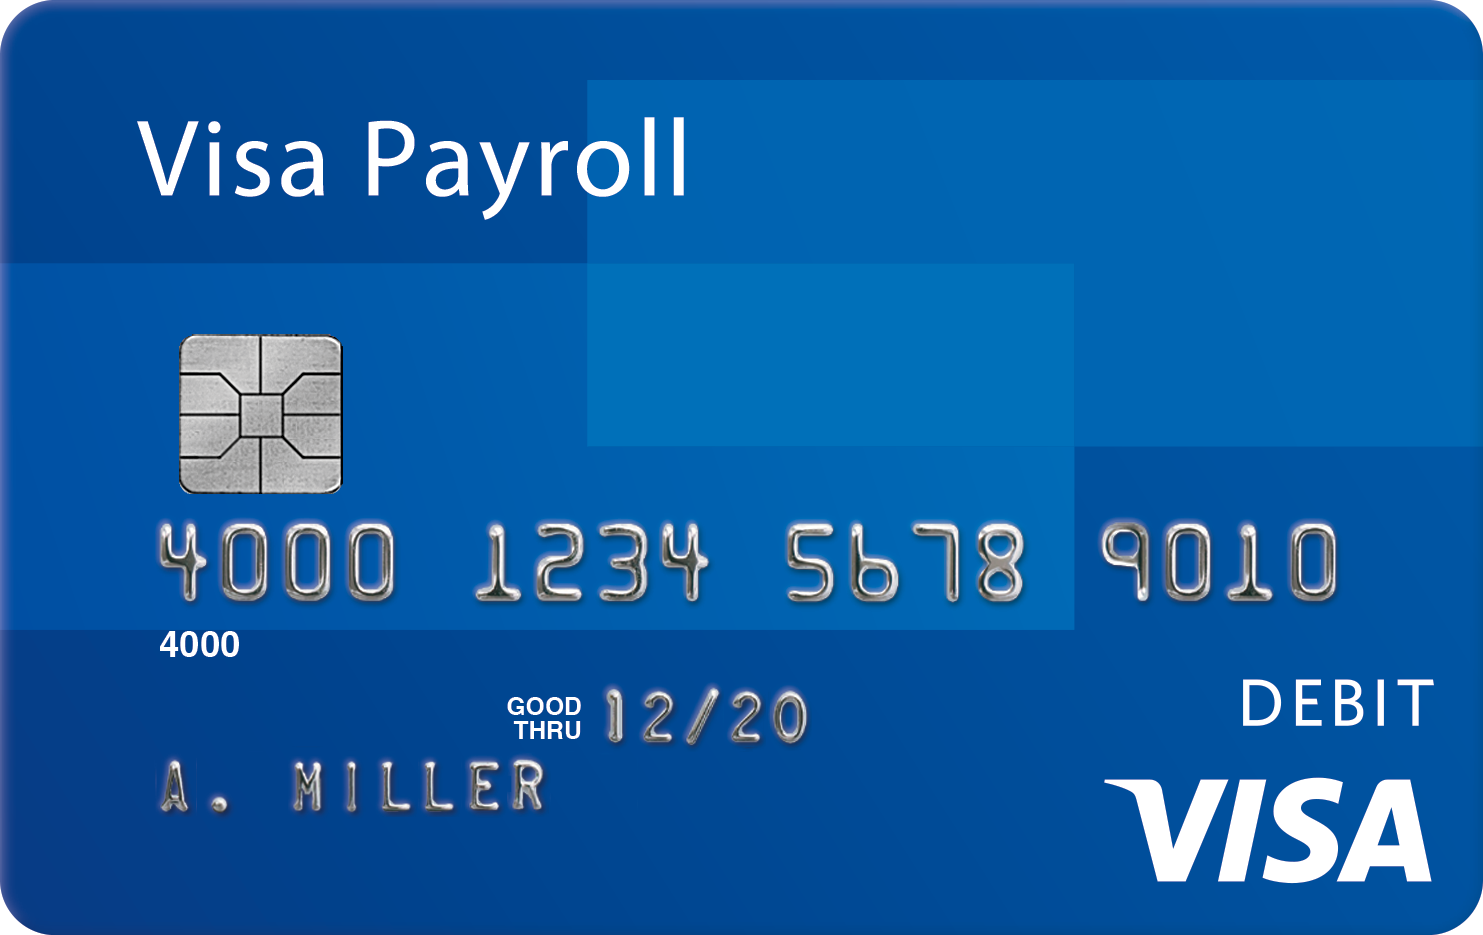 Visa Payroll chip card